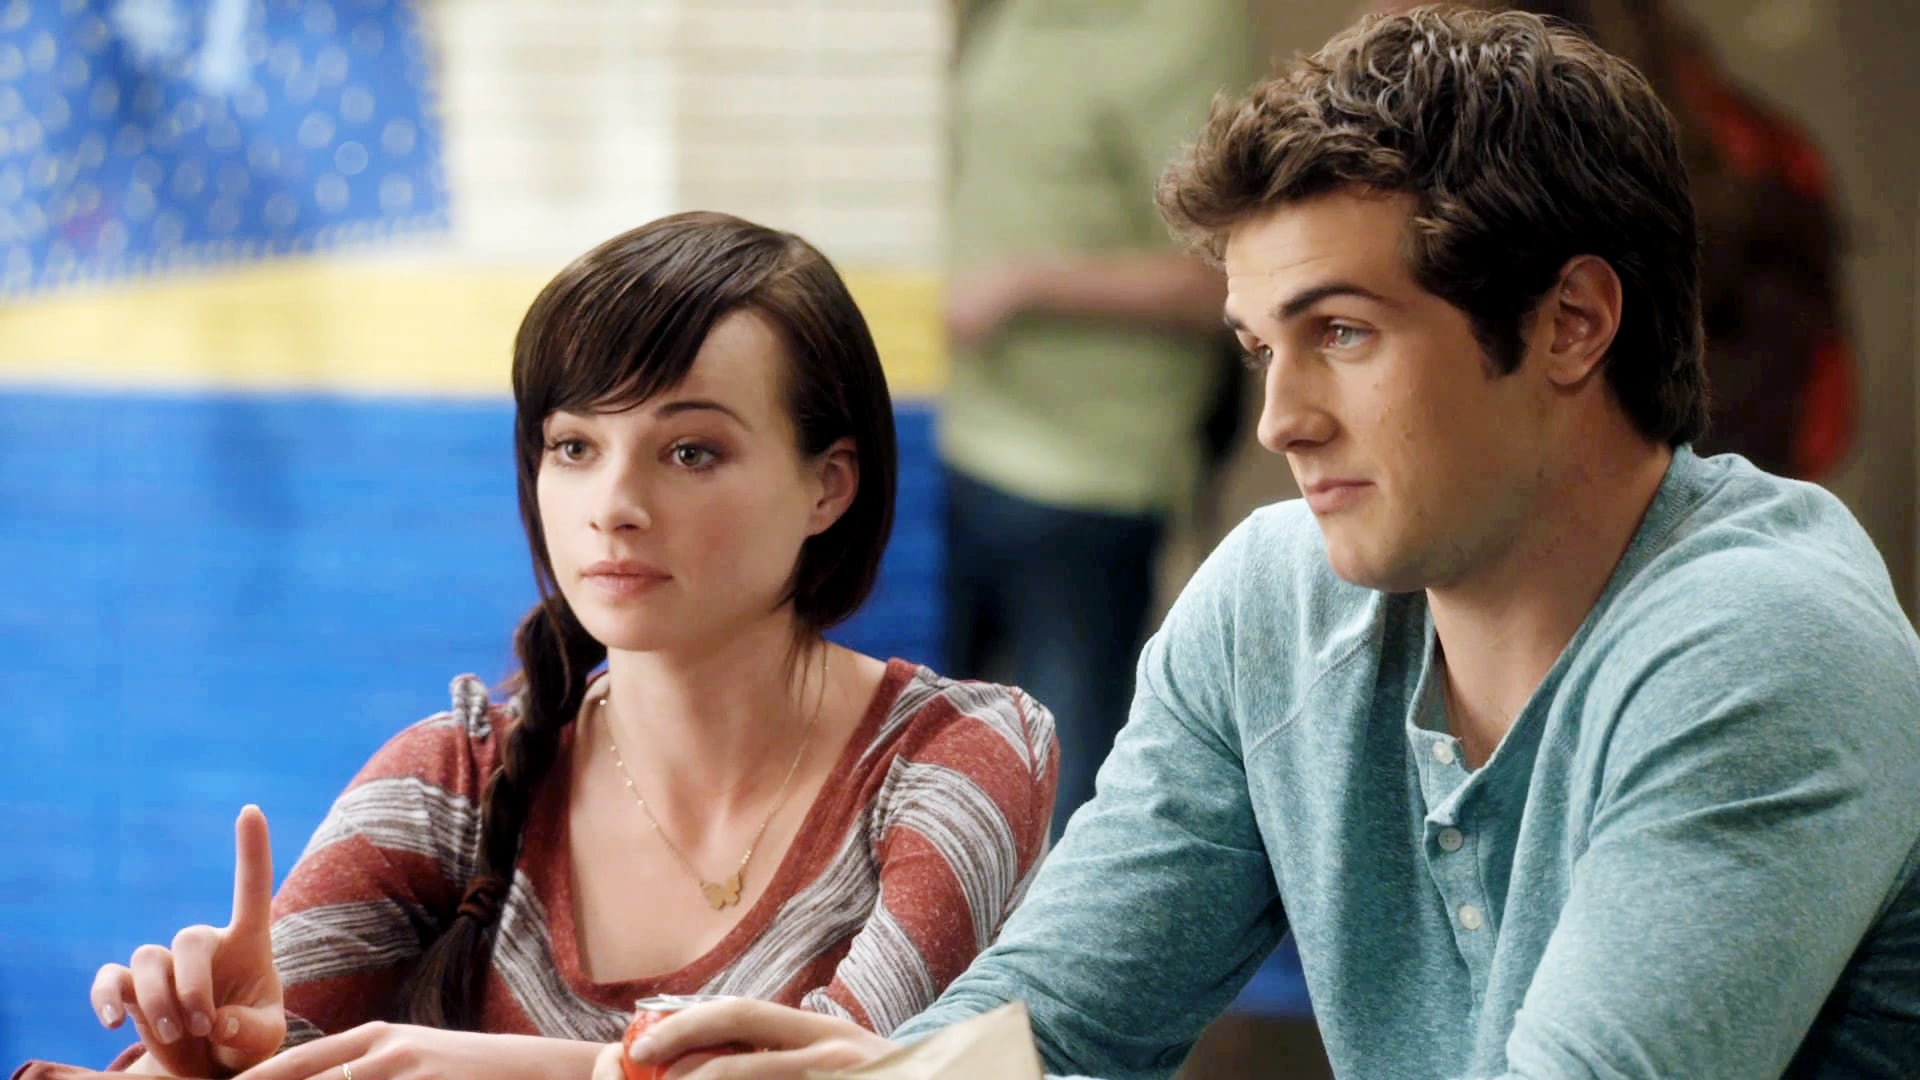 awkward season 3 episode 10 cucirca